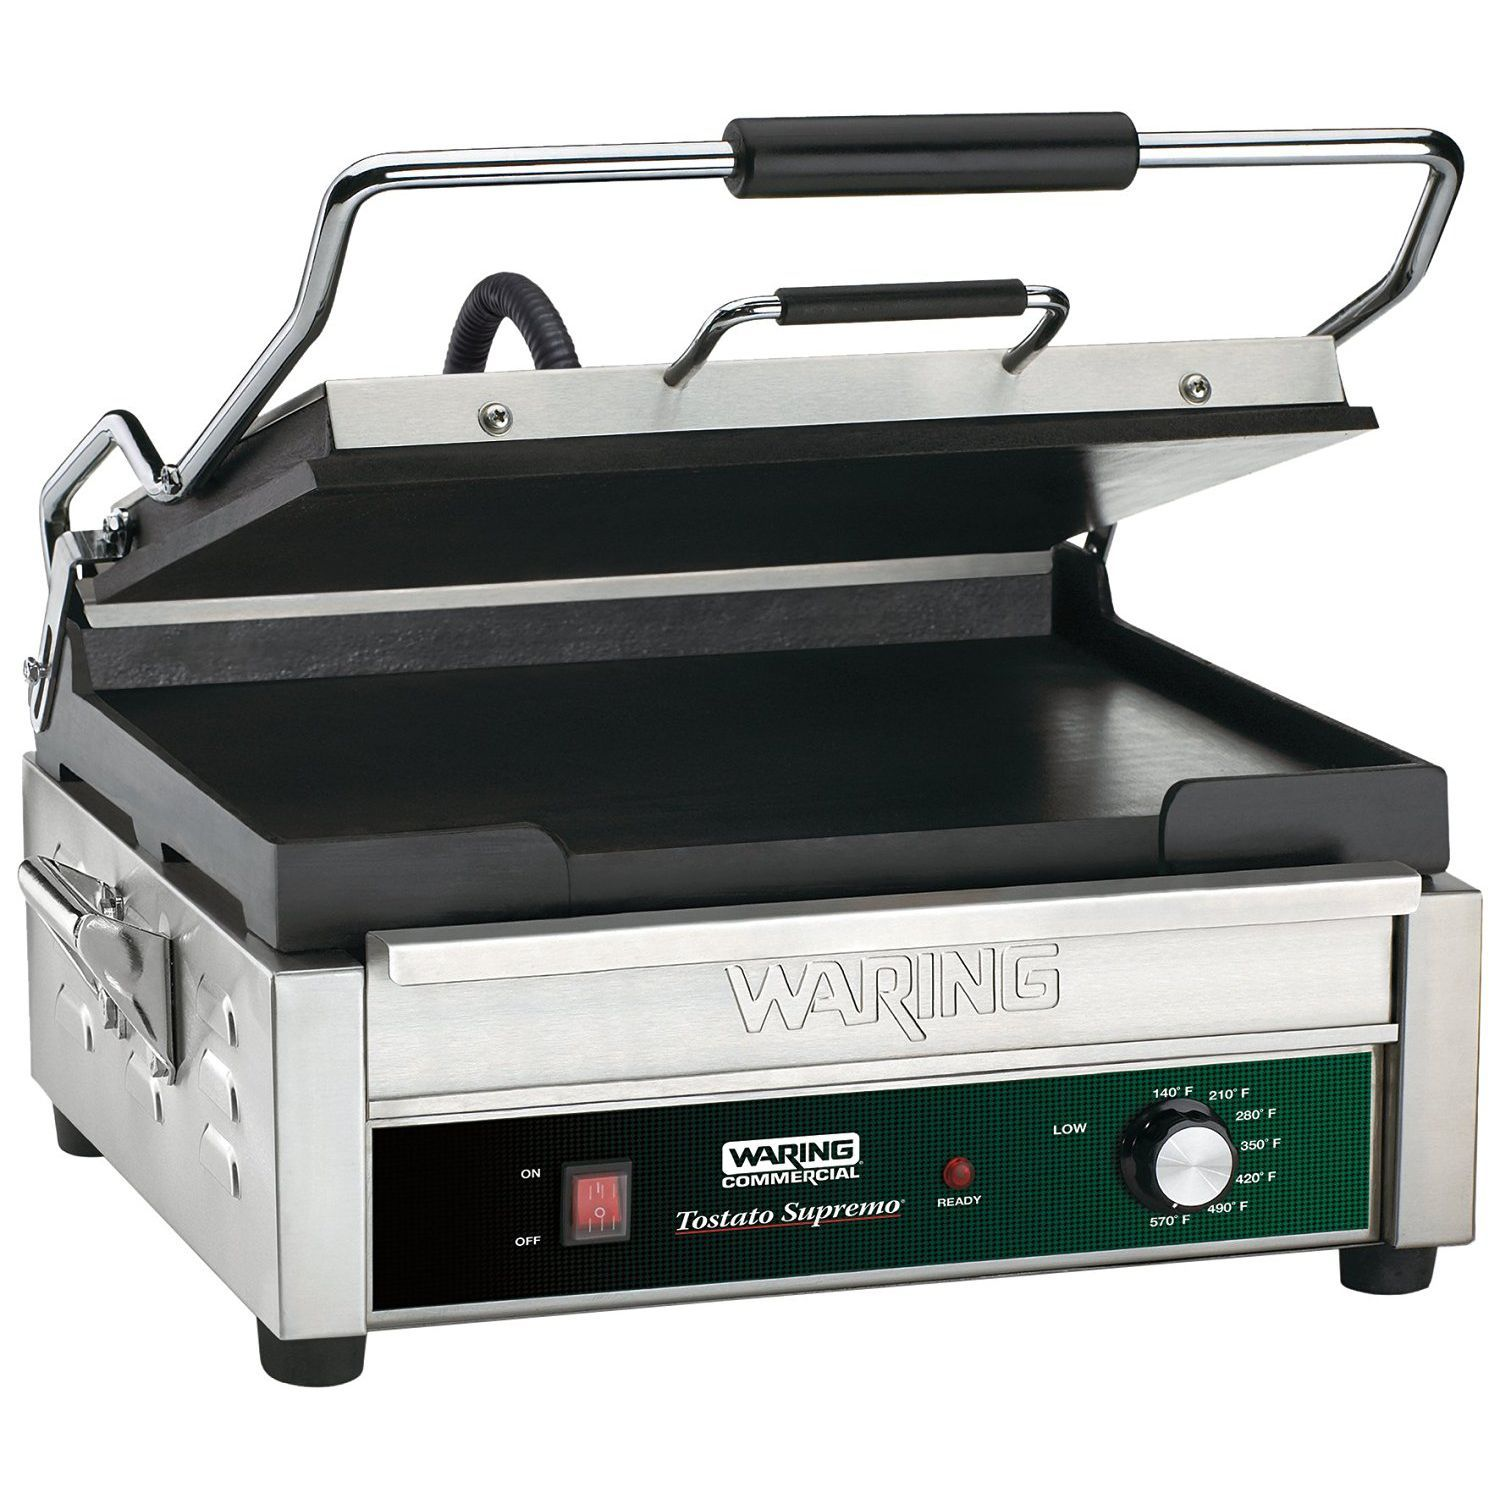 Waring WFG275 Tostato Supremo 14 by 14 Inch Flat Toasting Grill